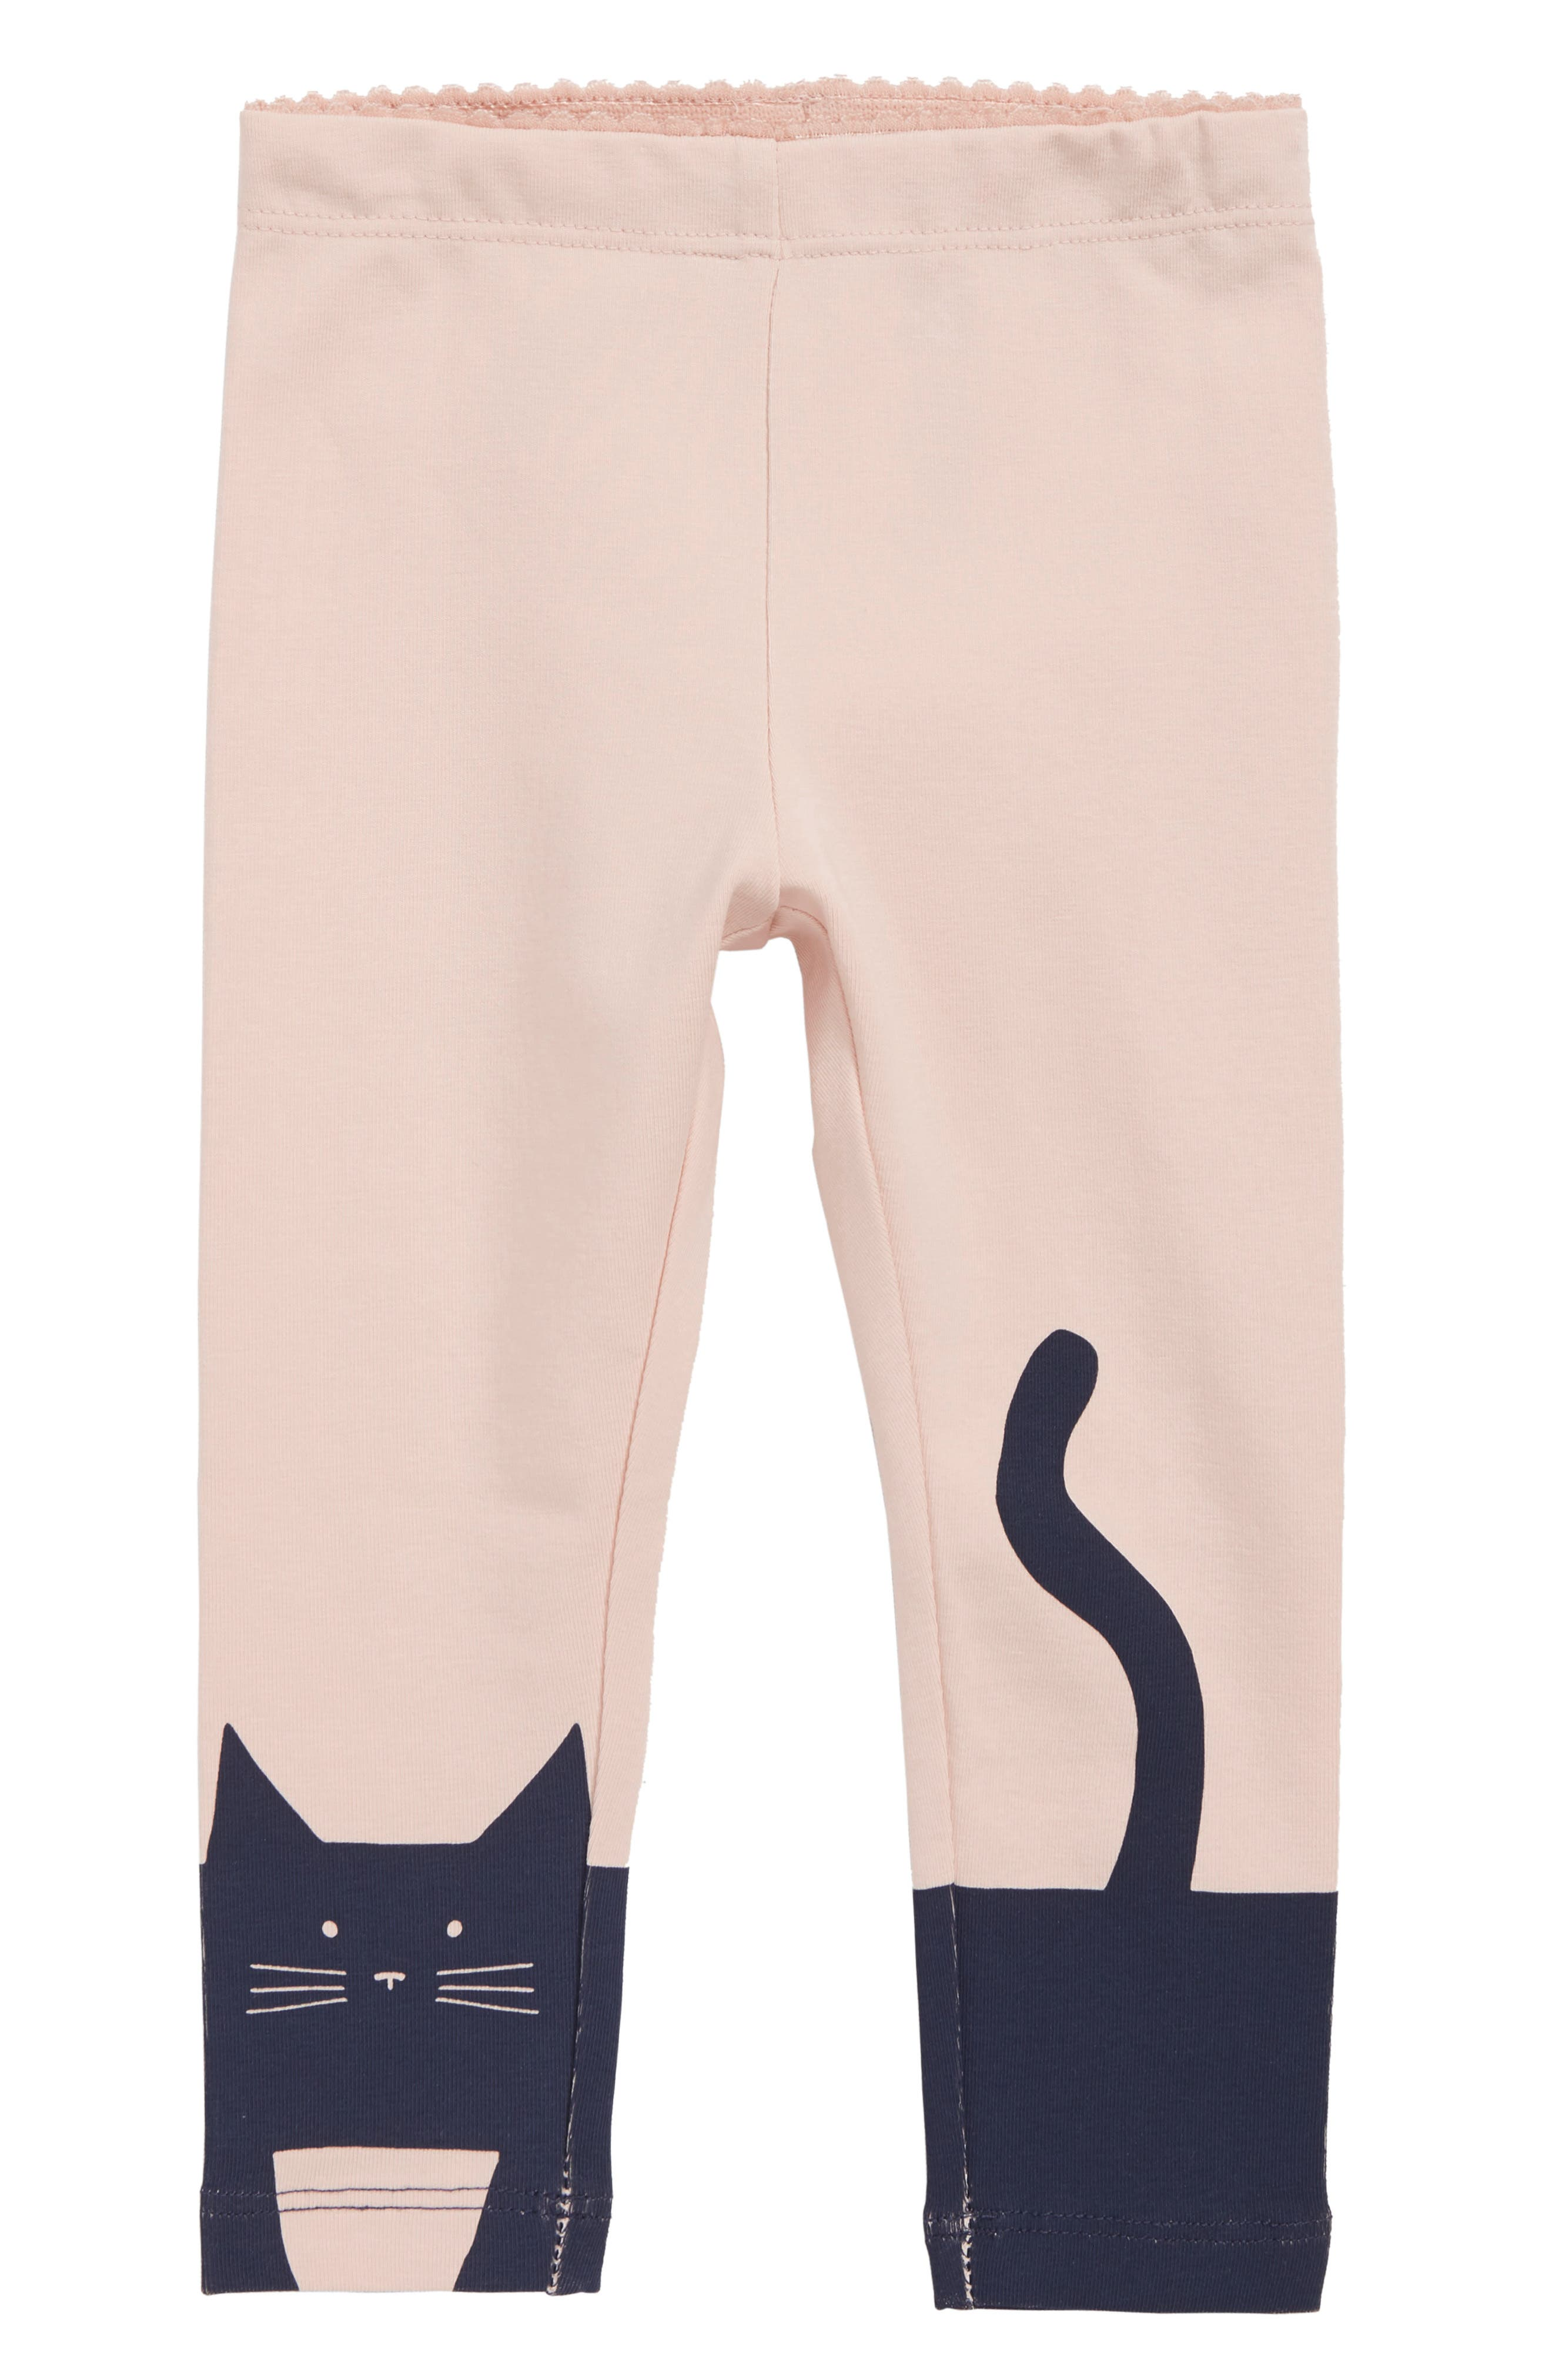 Curious Cat Leggings,                         Main,                         color, 686